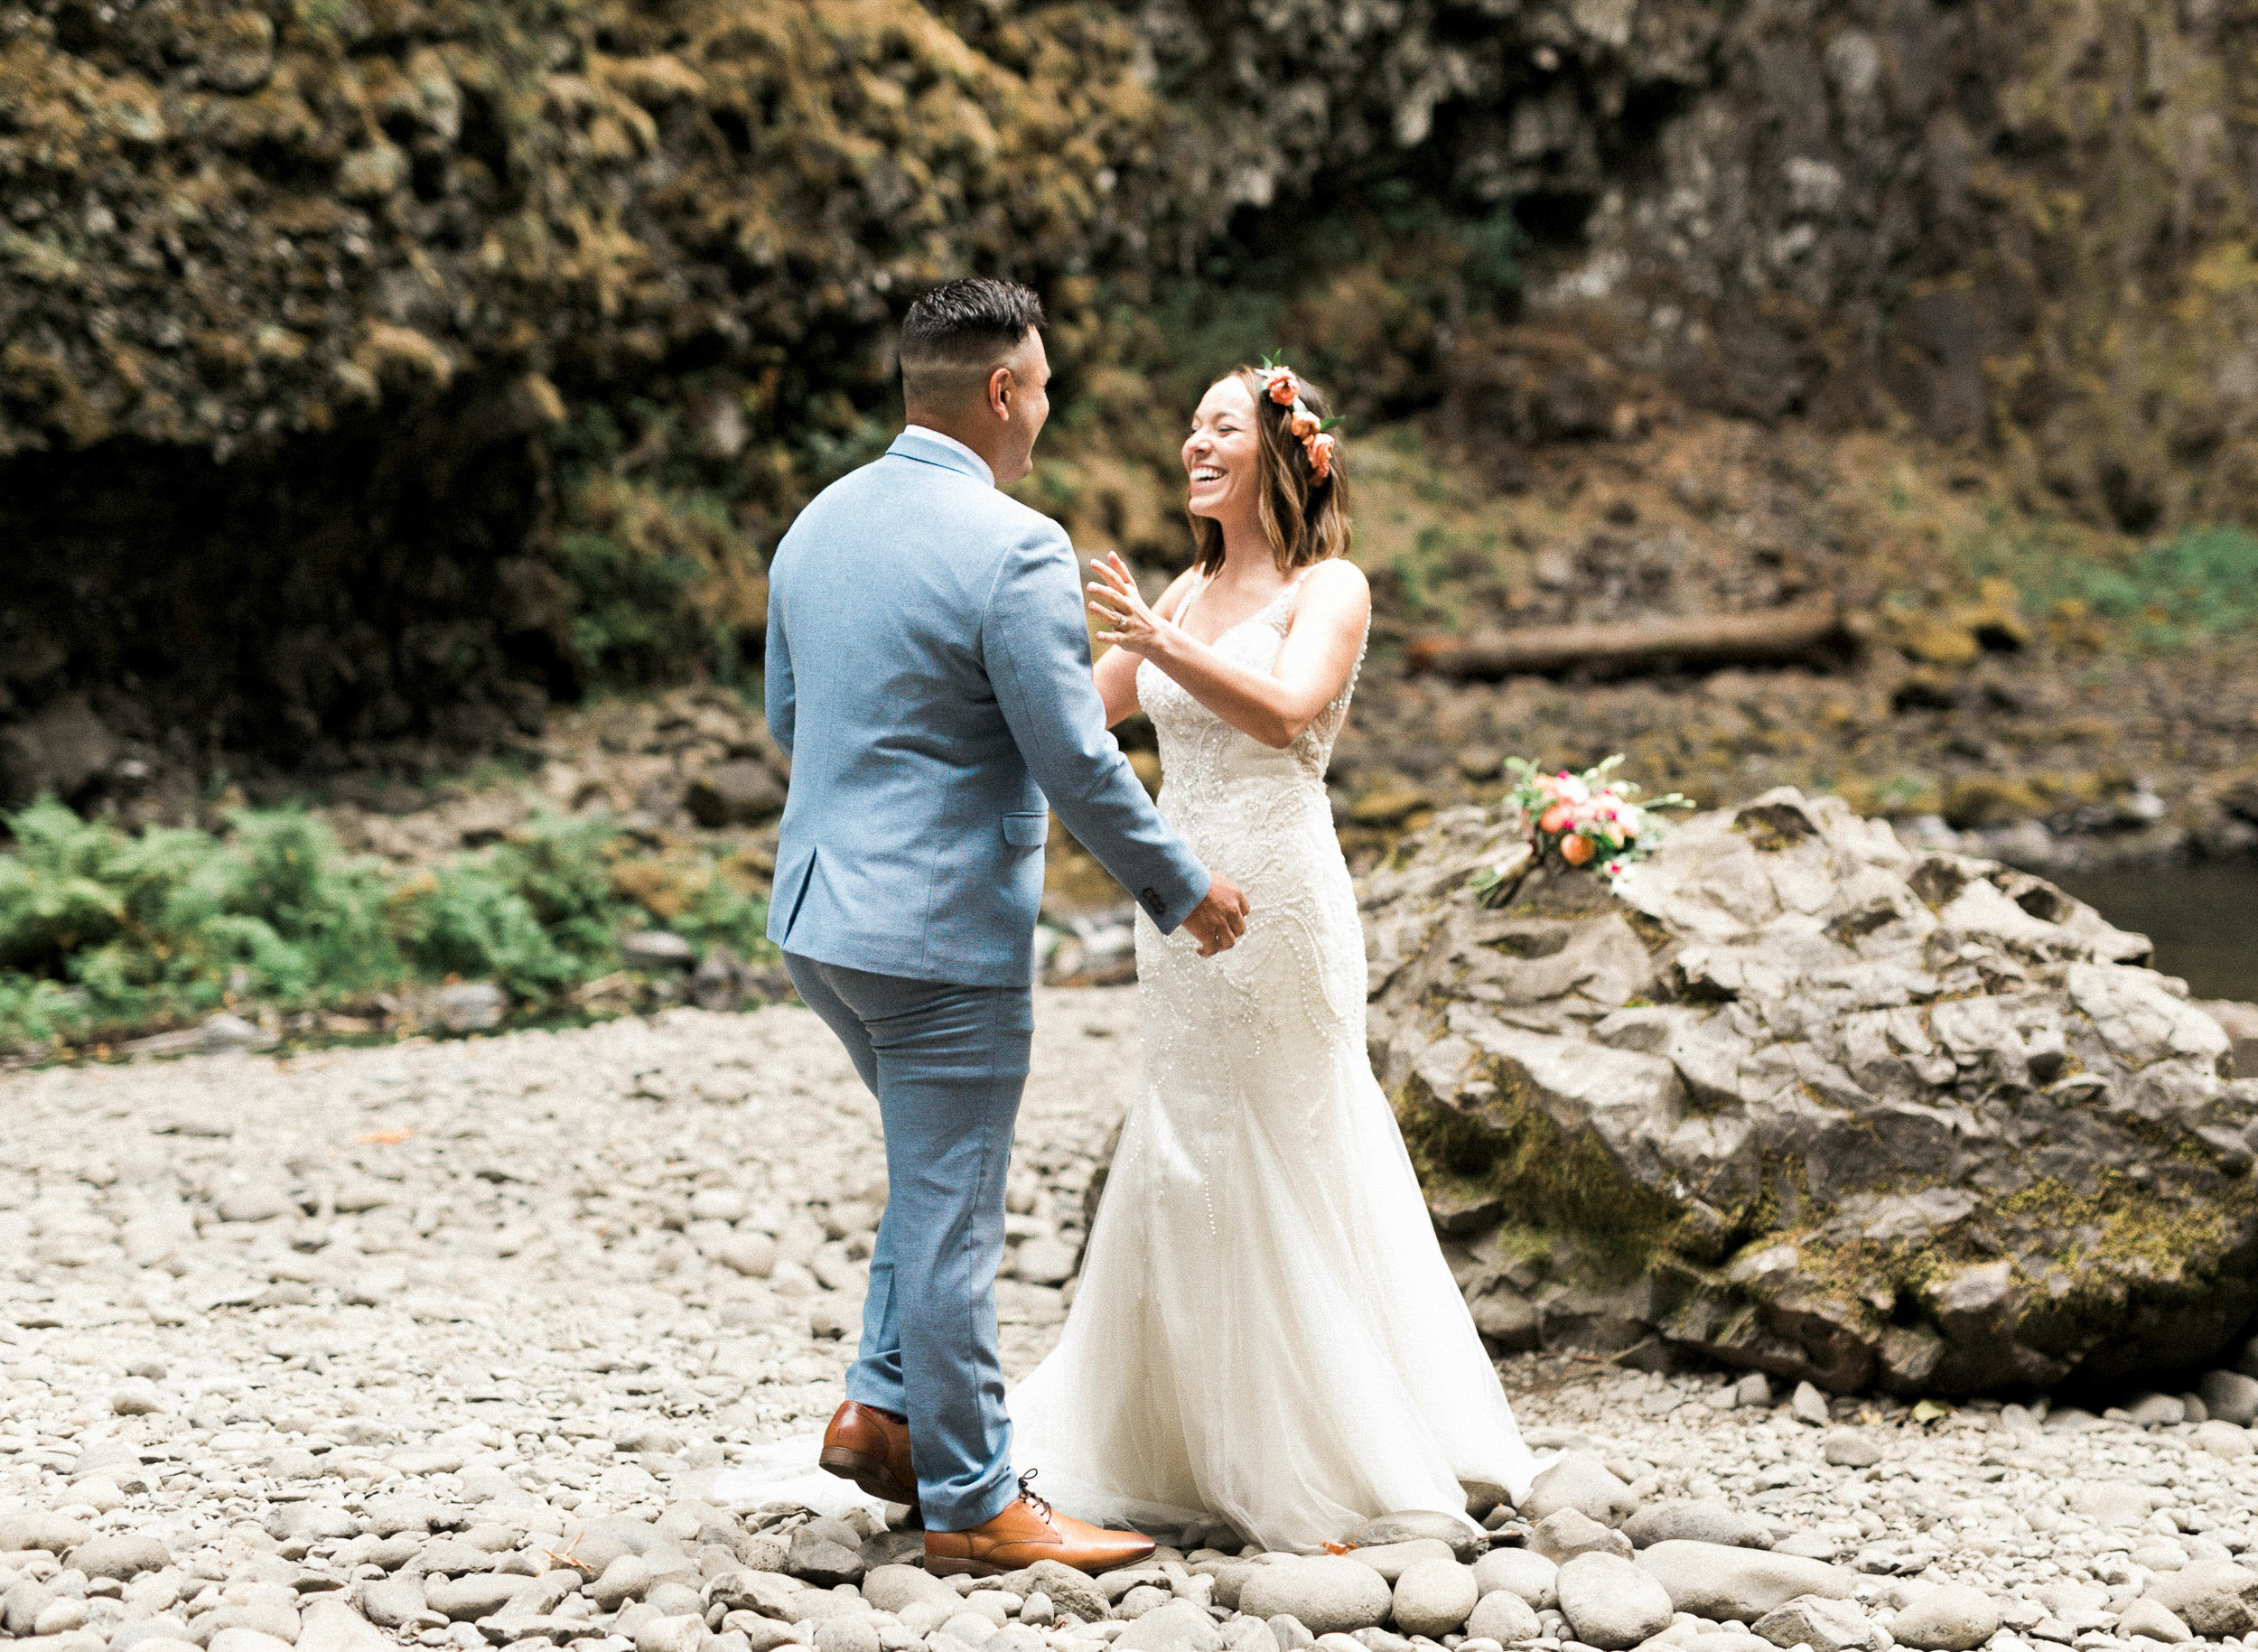 abiqua_falls_elopement_wedding_oregon_photographer_videographer_052.jpg